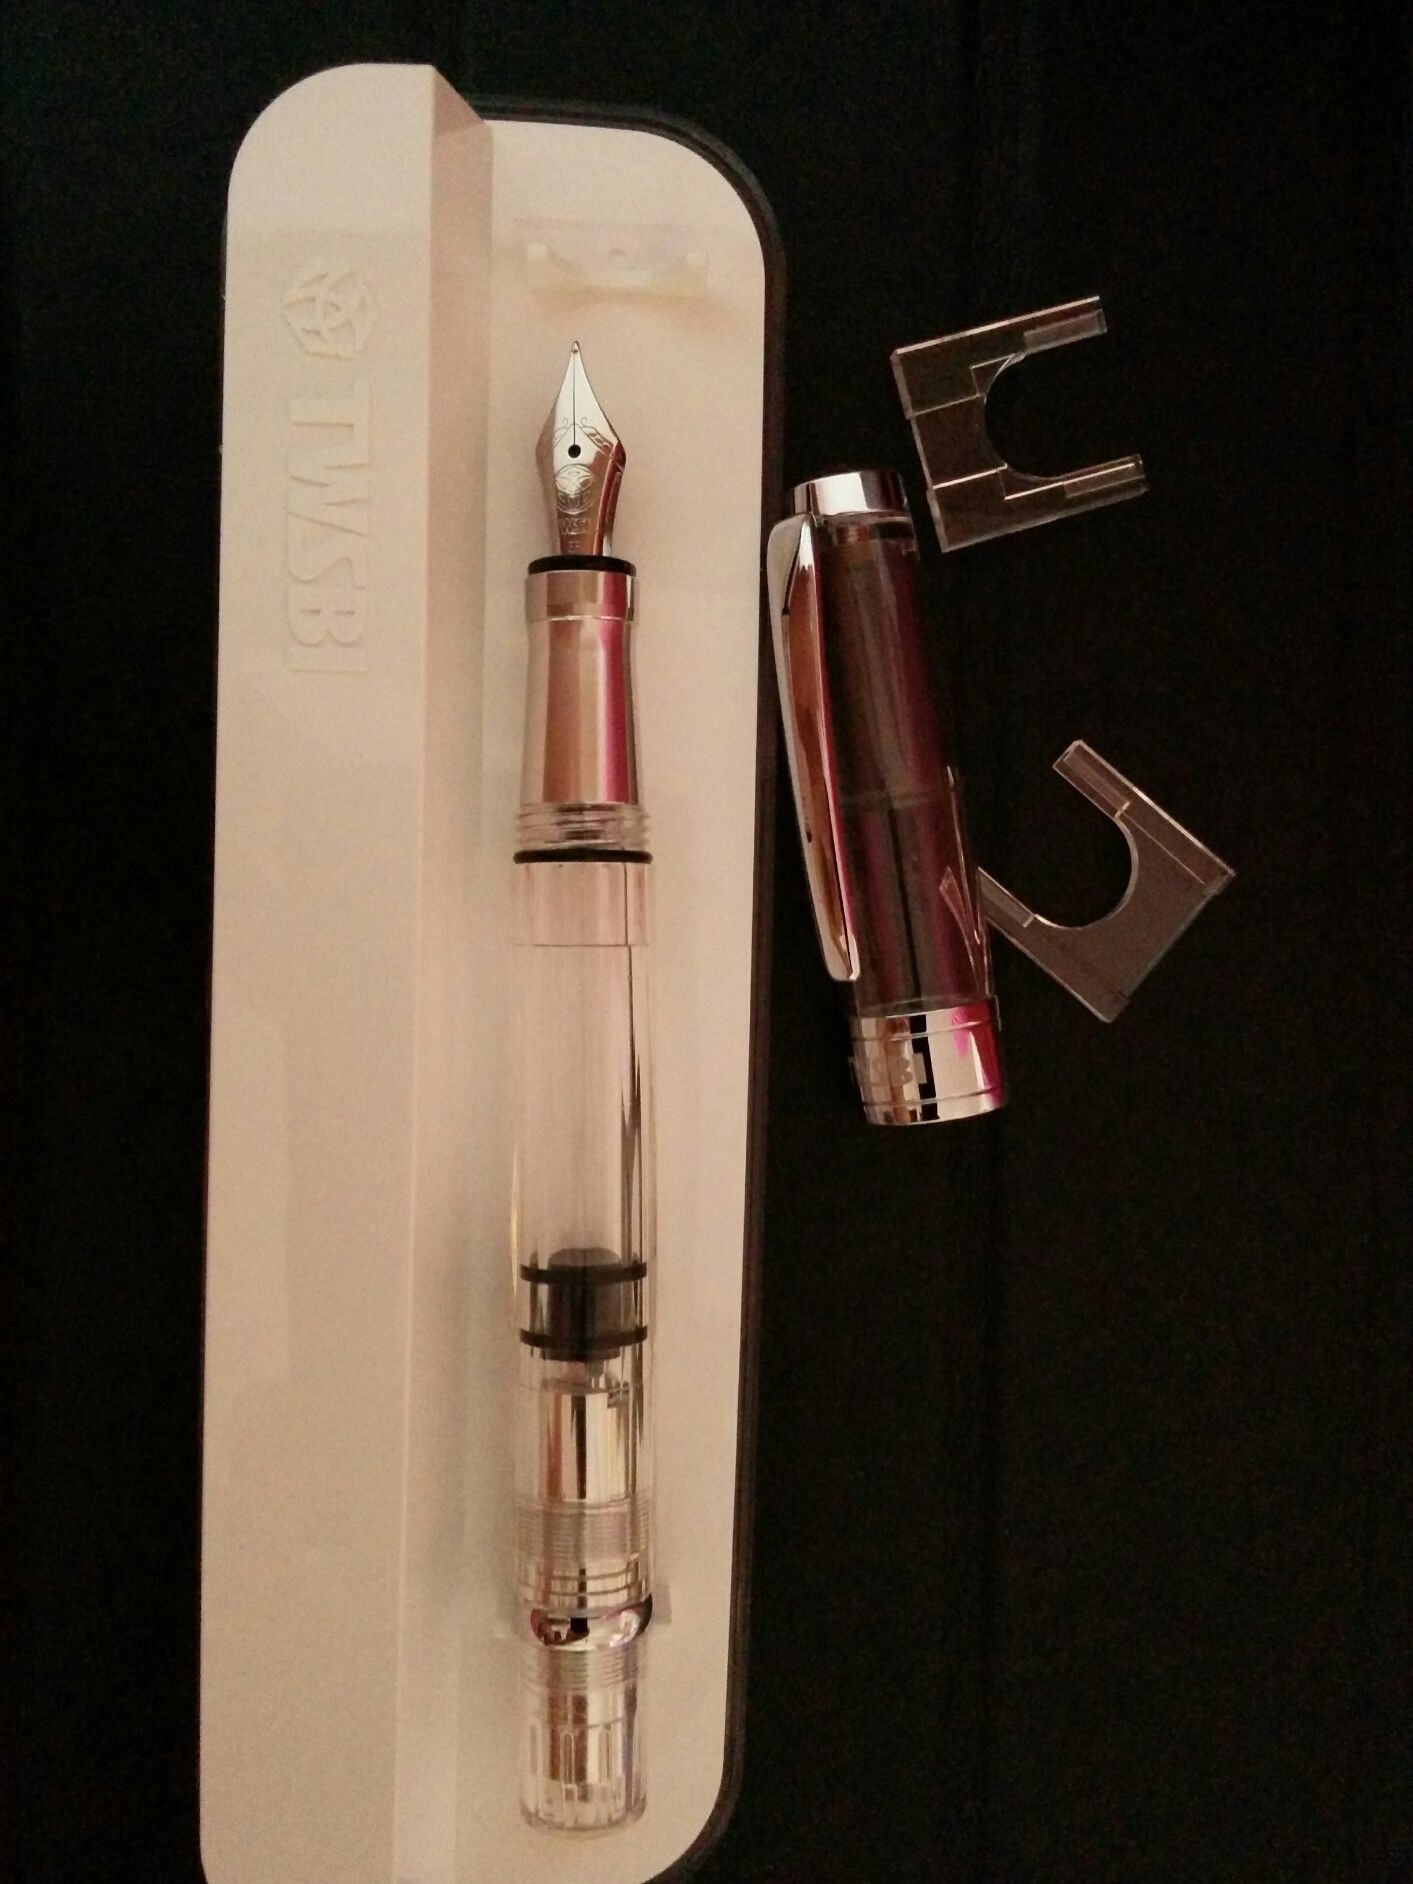 Twsbi AL. It's finally here :)